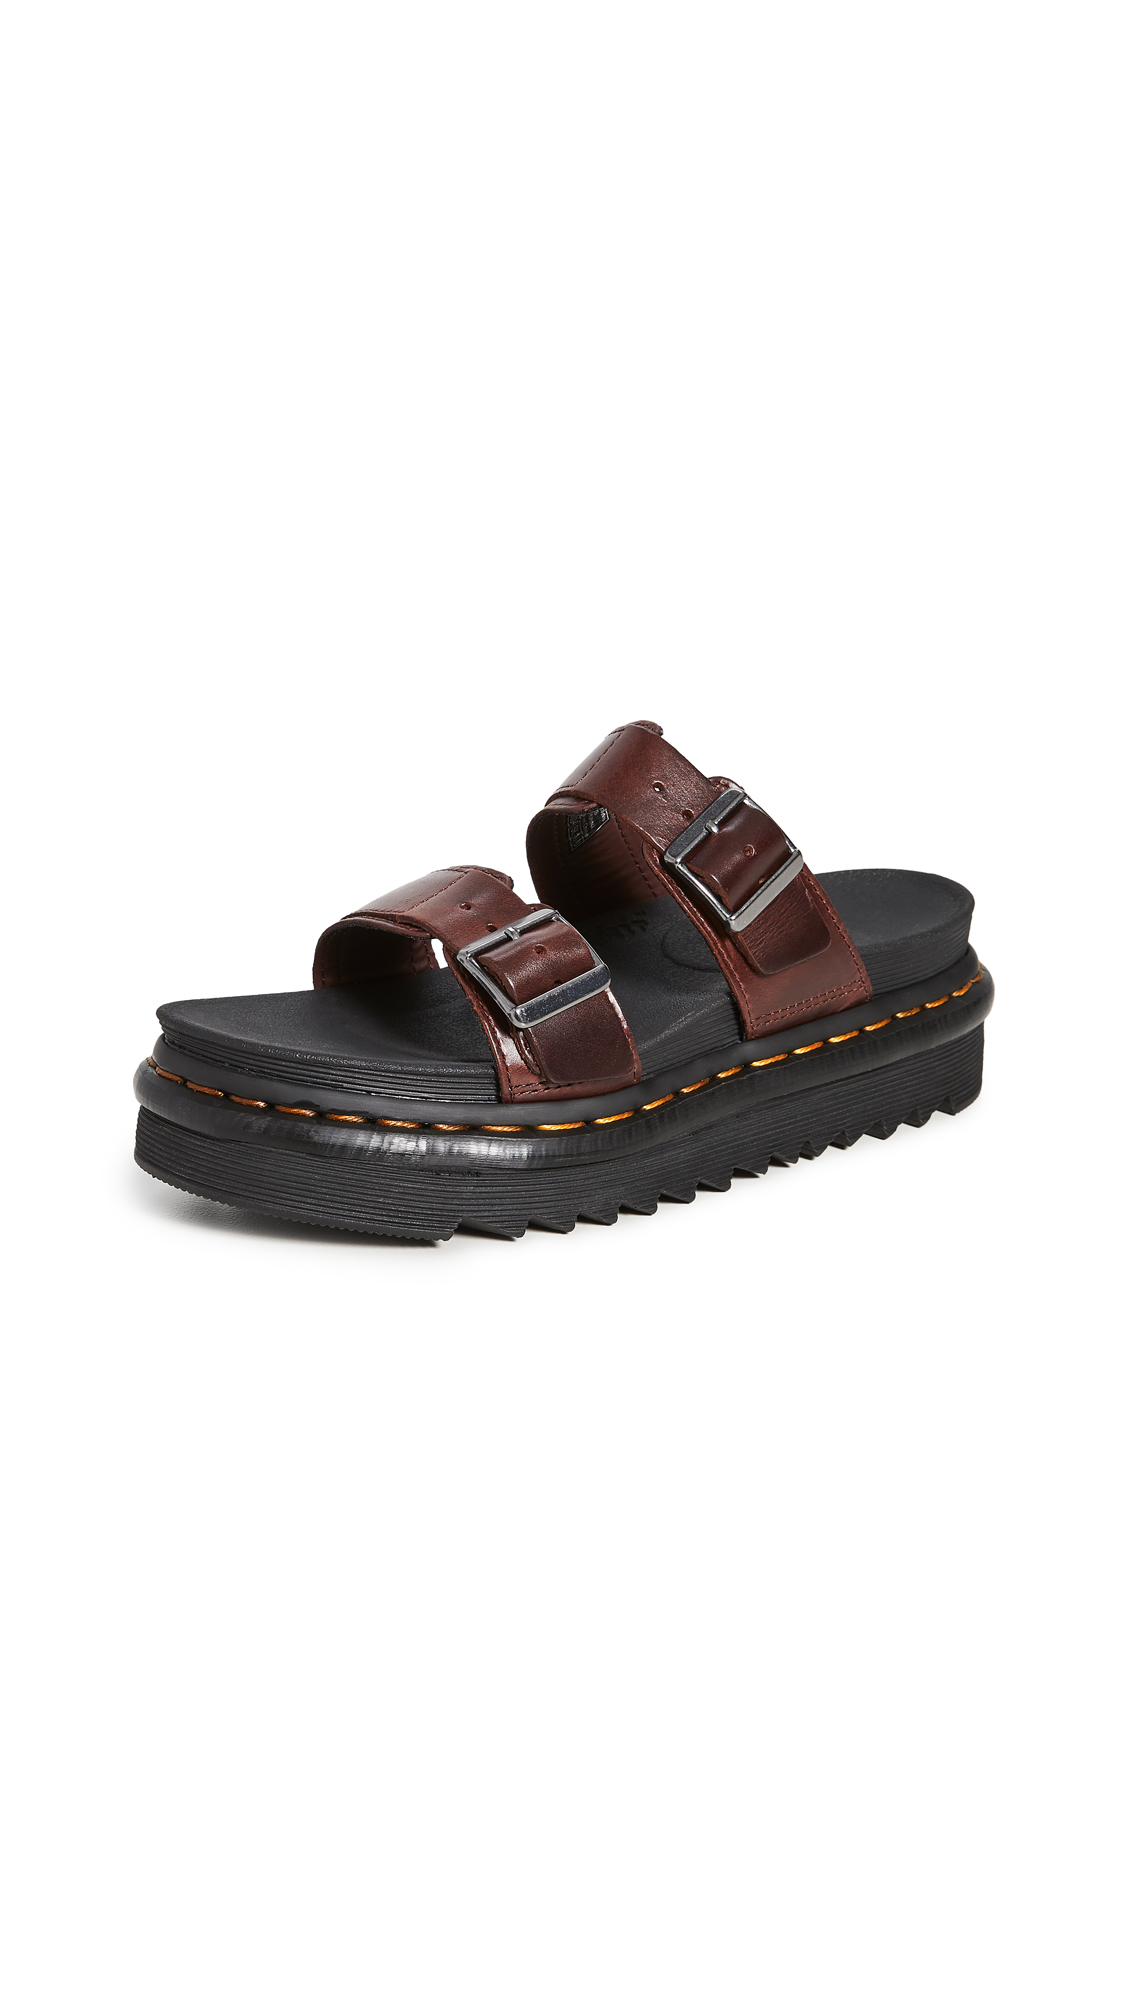 Buy Dr. Martens Myles Slide Sandals online, shop Dr. Martens